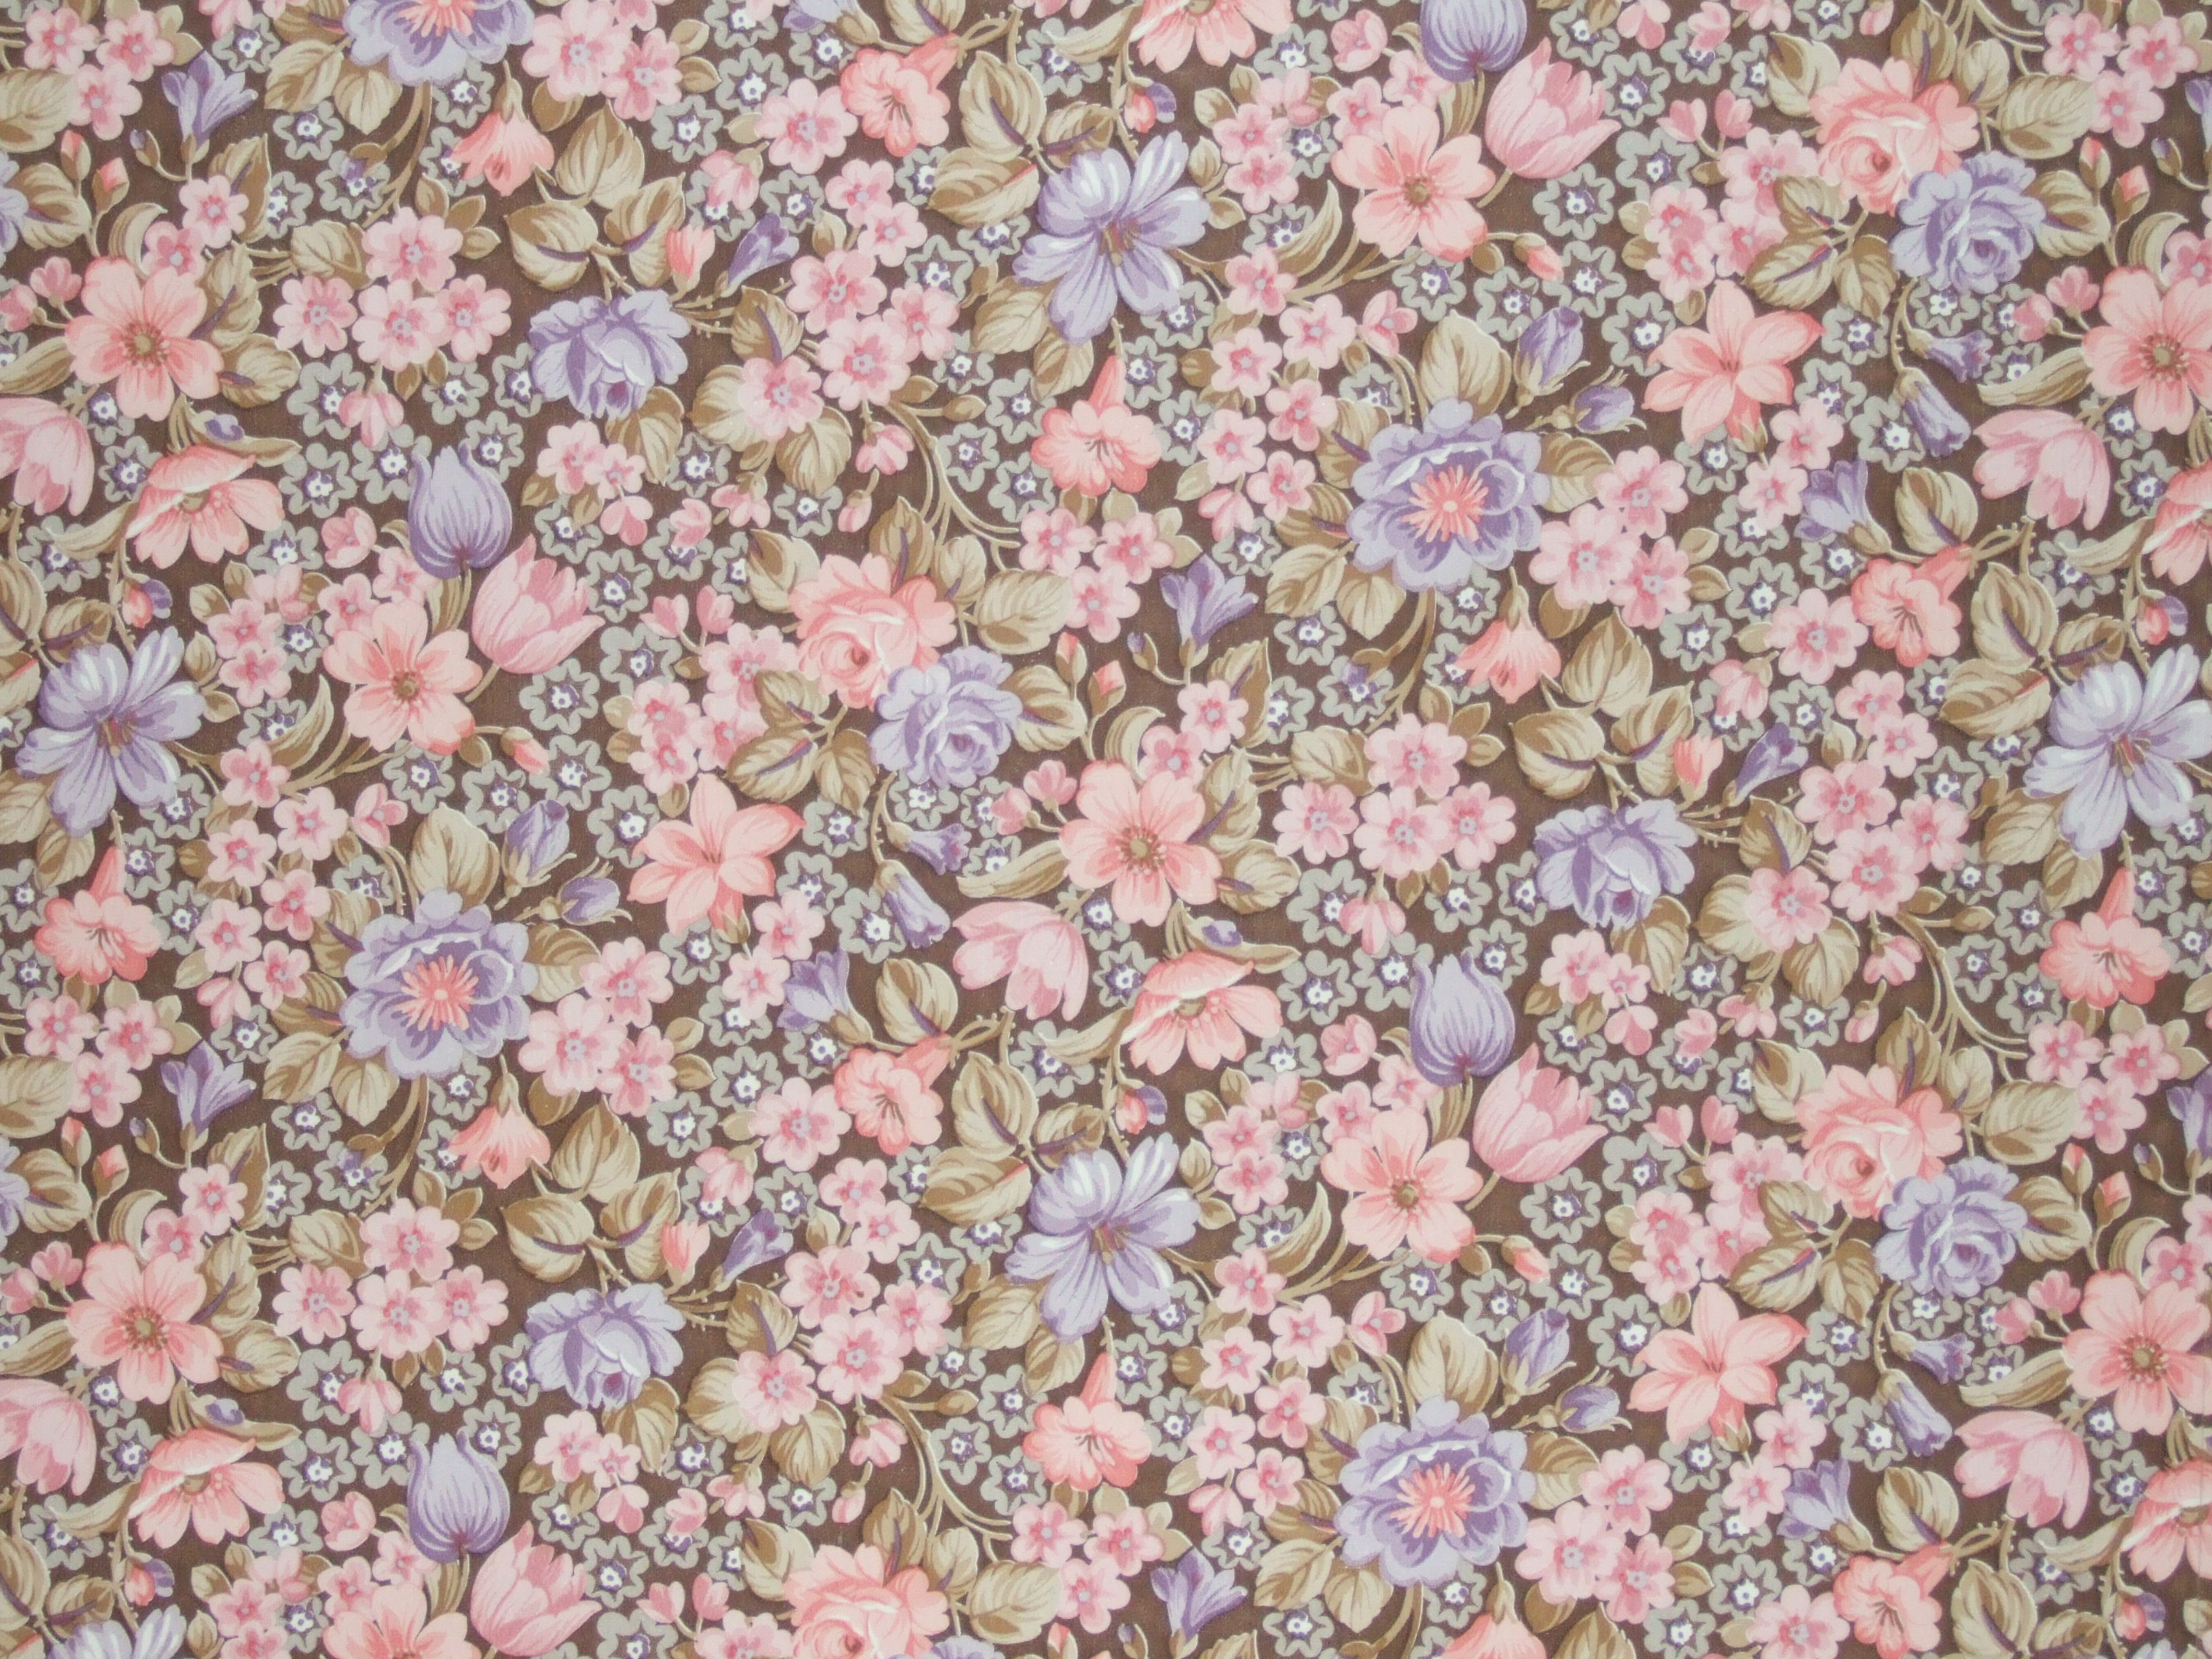 ImageAfter Textures Tabus Wallpaper Flowers Texture Pattern